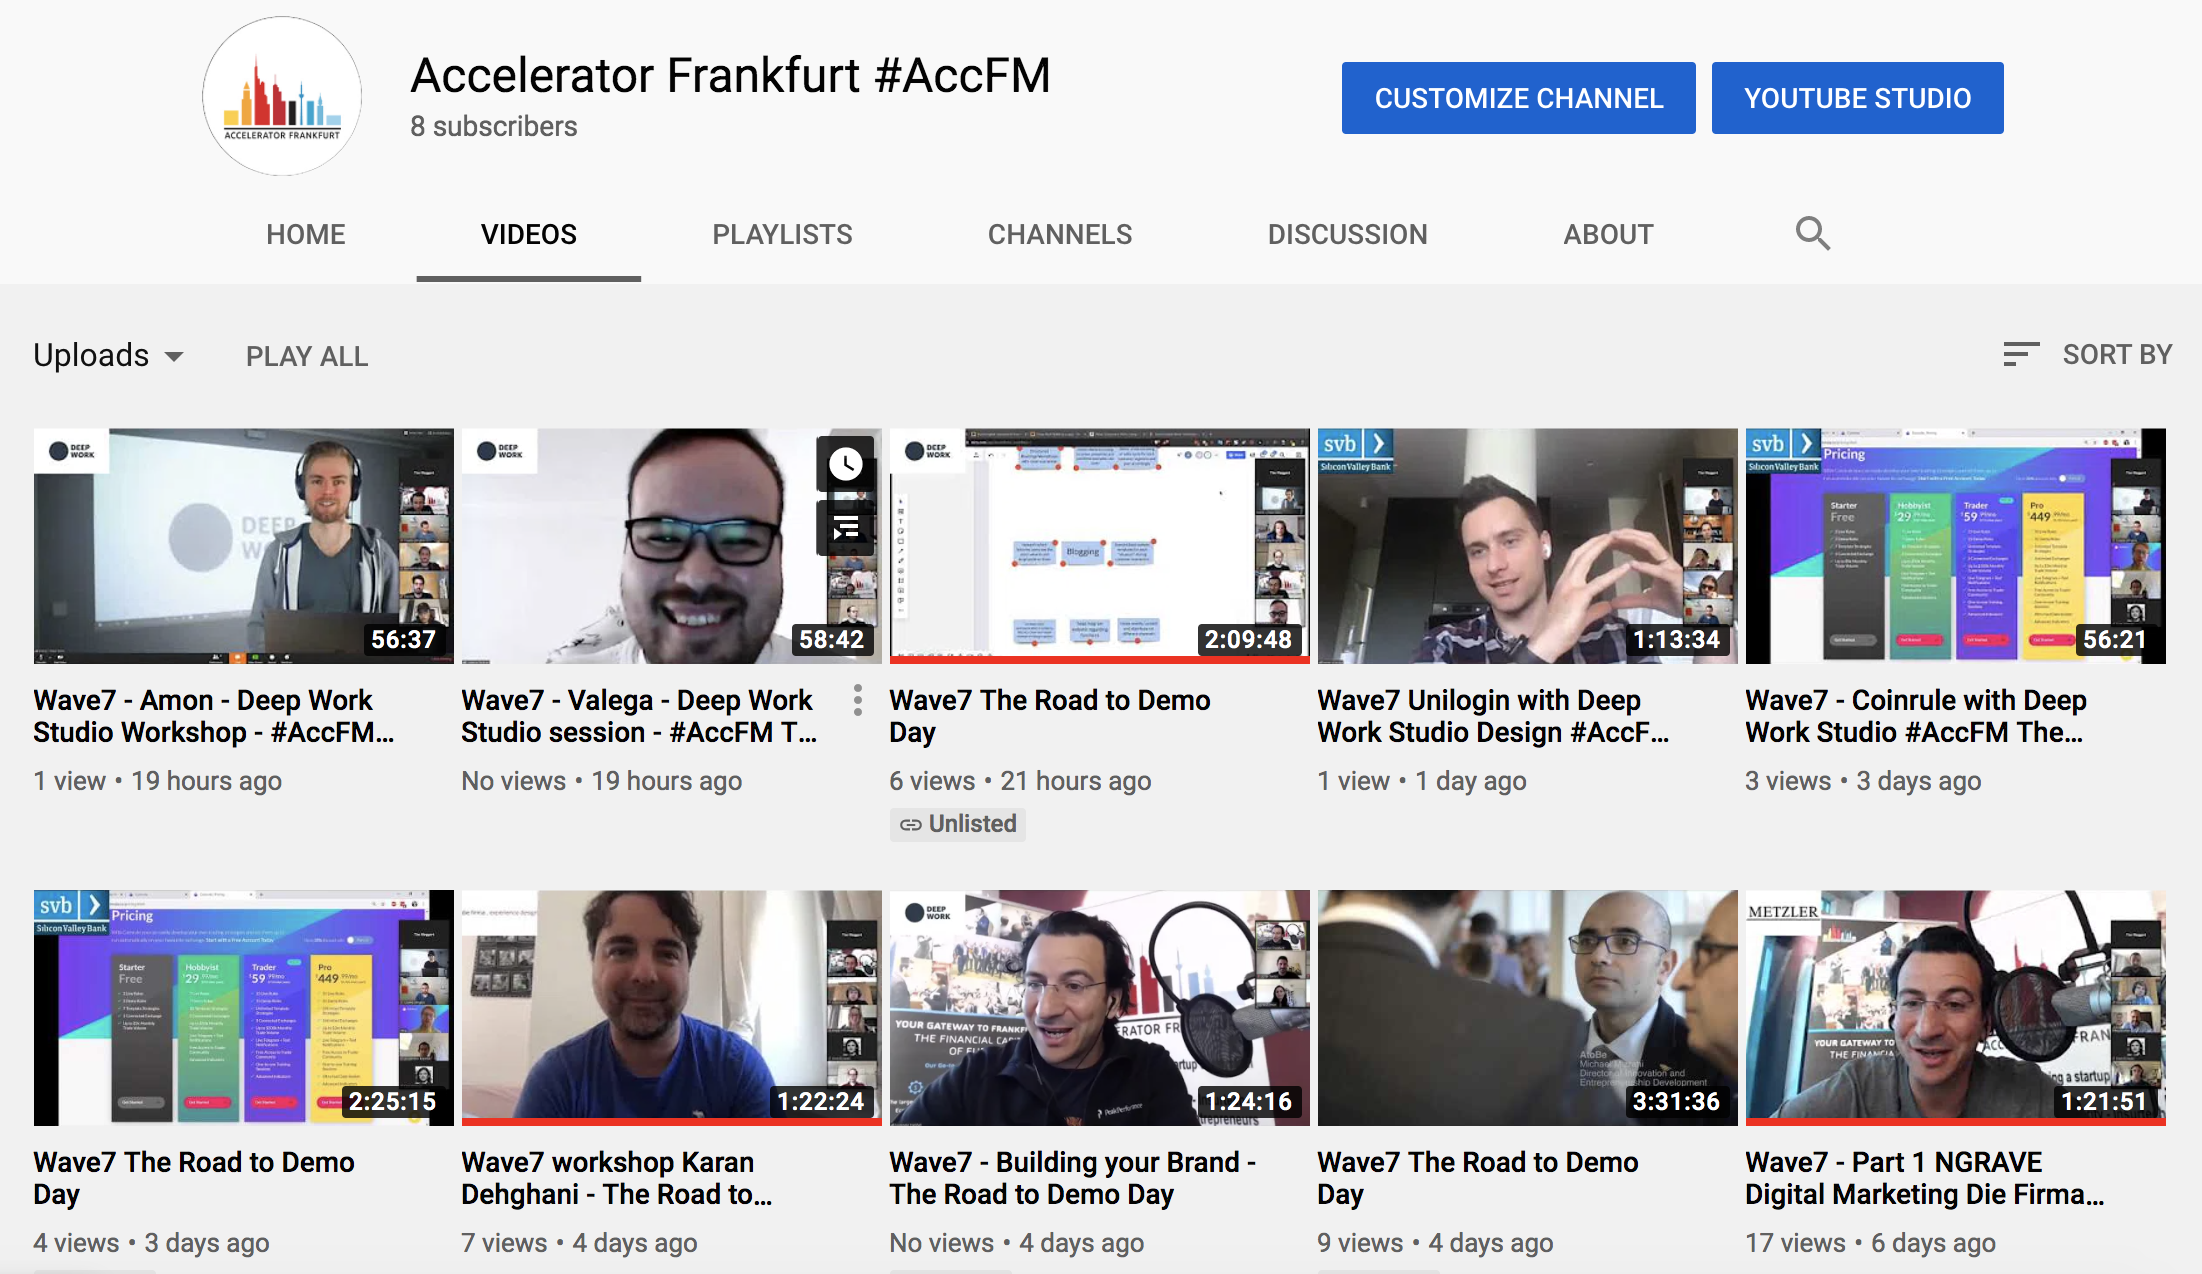 https://www.acceleratorfrankfurt.com/wp-content/uploads/2020/05/youtube1.png